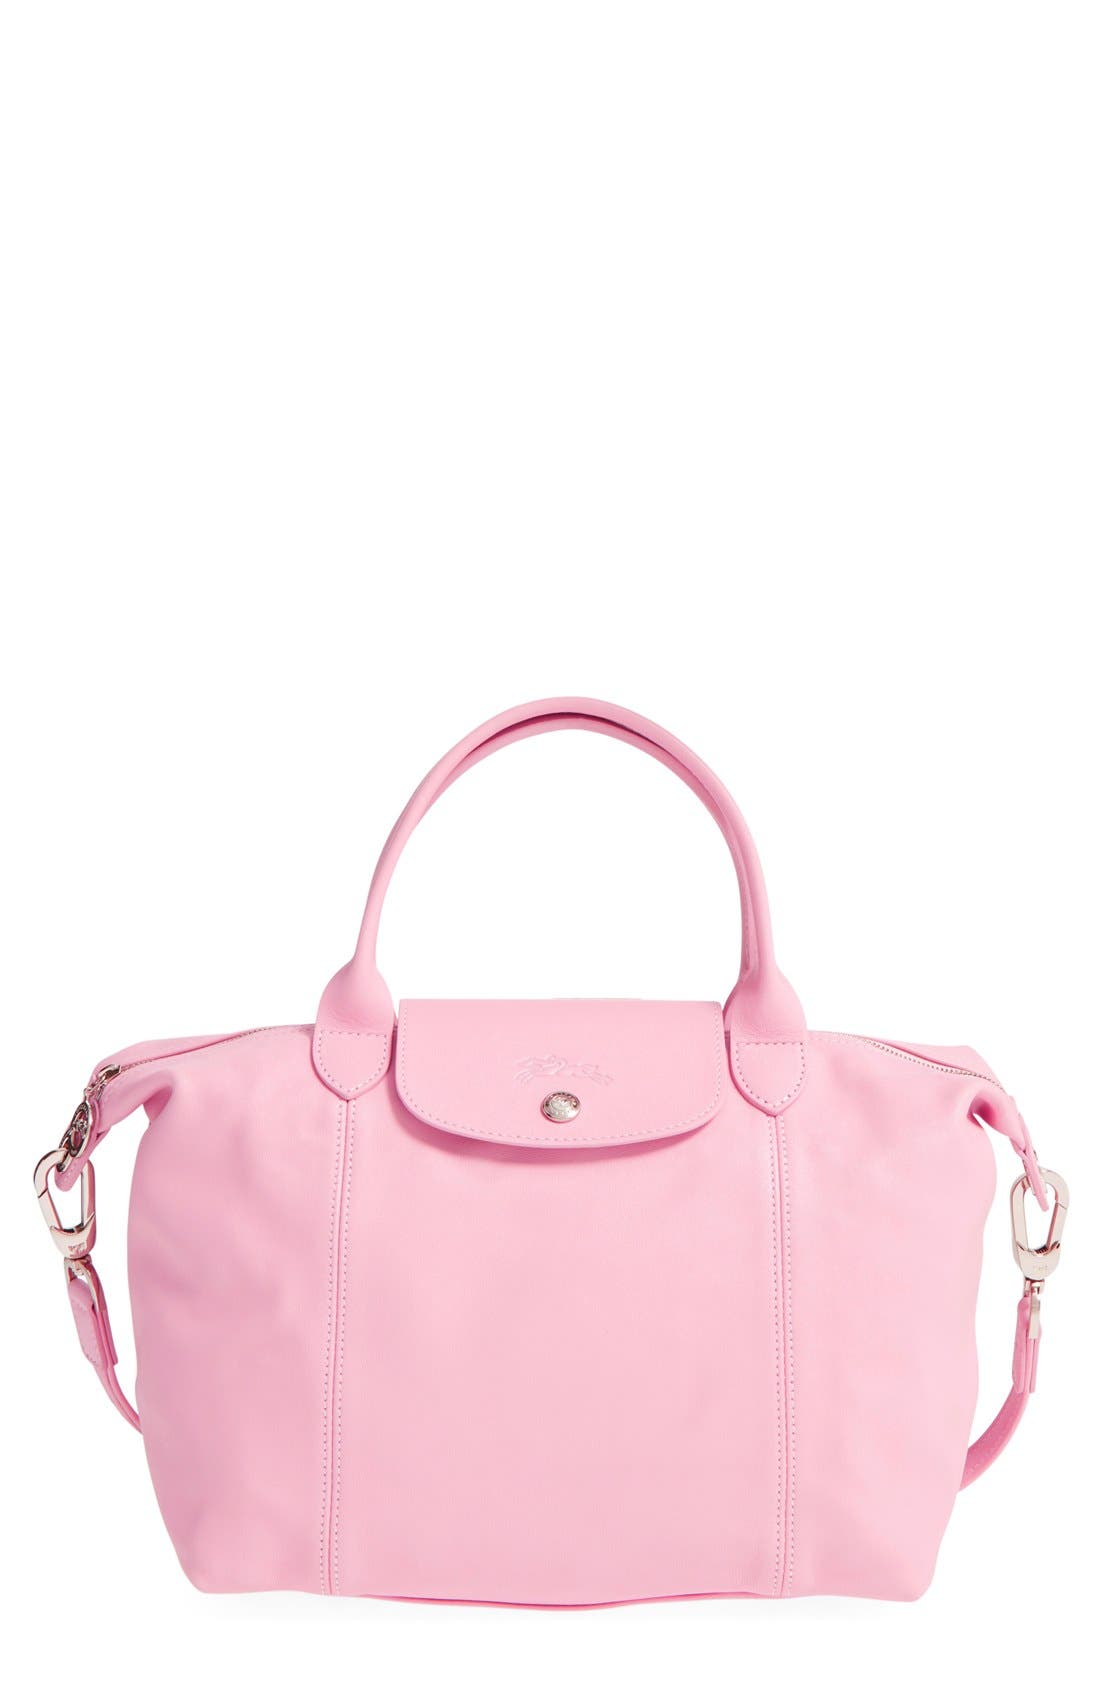 Small 'Le Pliage Cuir' Leather Top Handle Tote,                             Main thumbnail 1, color,                             Girl